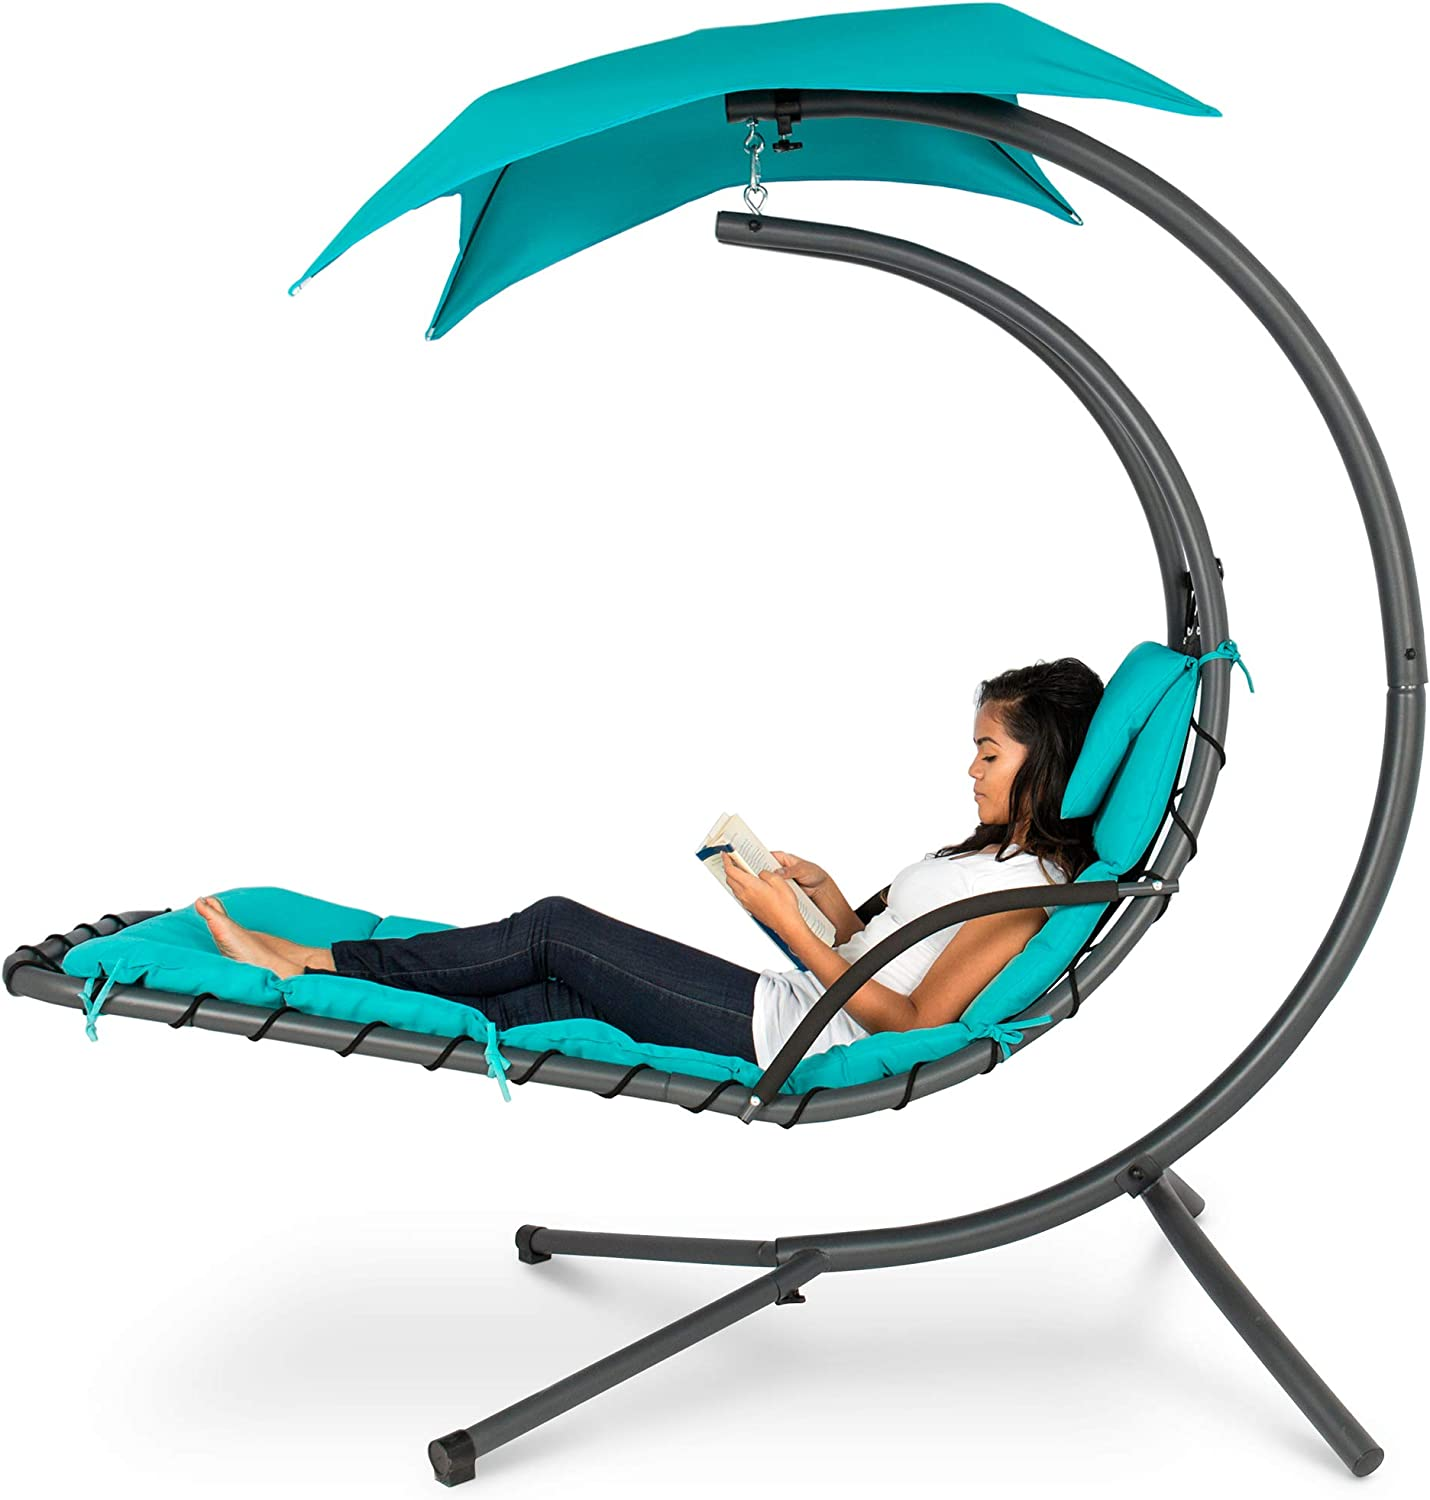 Best Choice Products Outdoor Hanging Curved Chaise Lounge Chair Swing for Backyard, Patio w Built-In Pillow, Removable Canopy, Stand – Teal